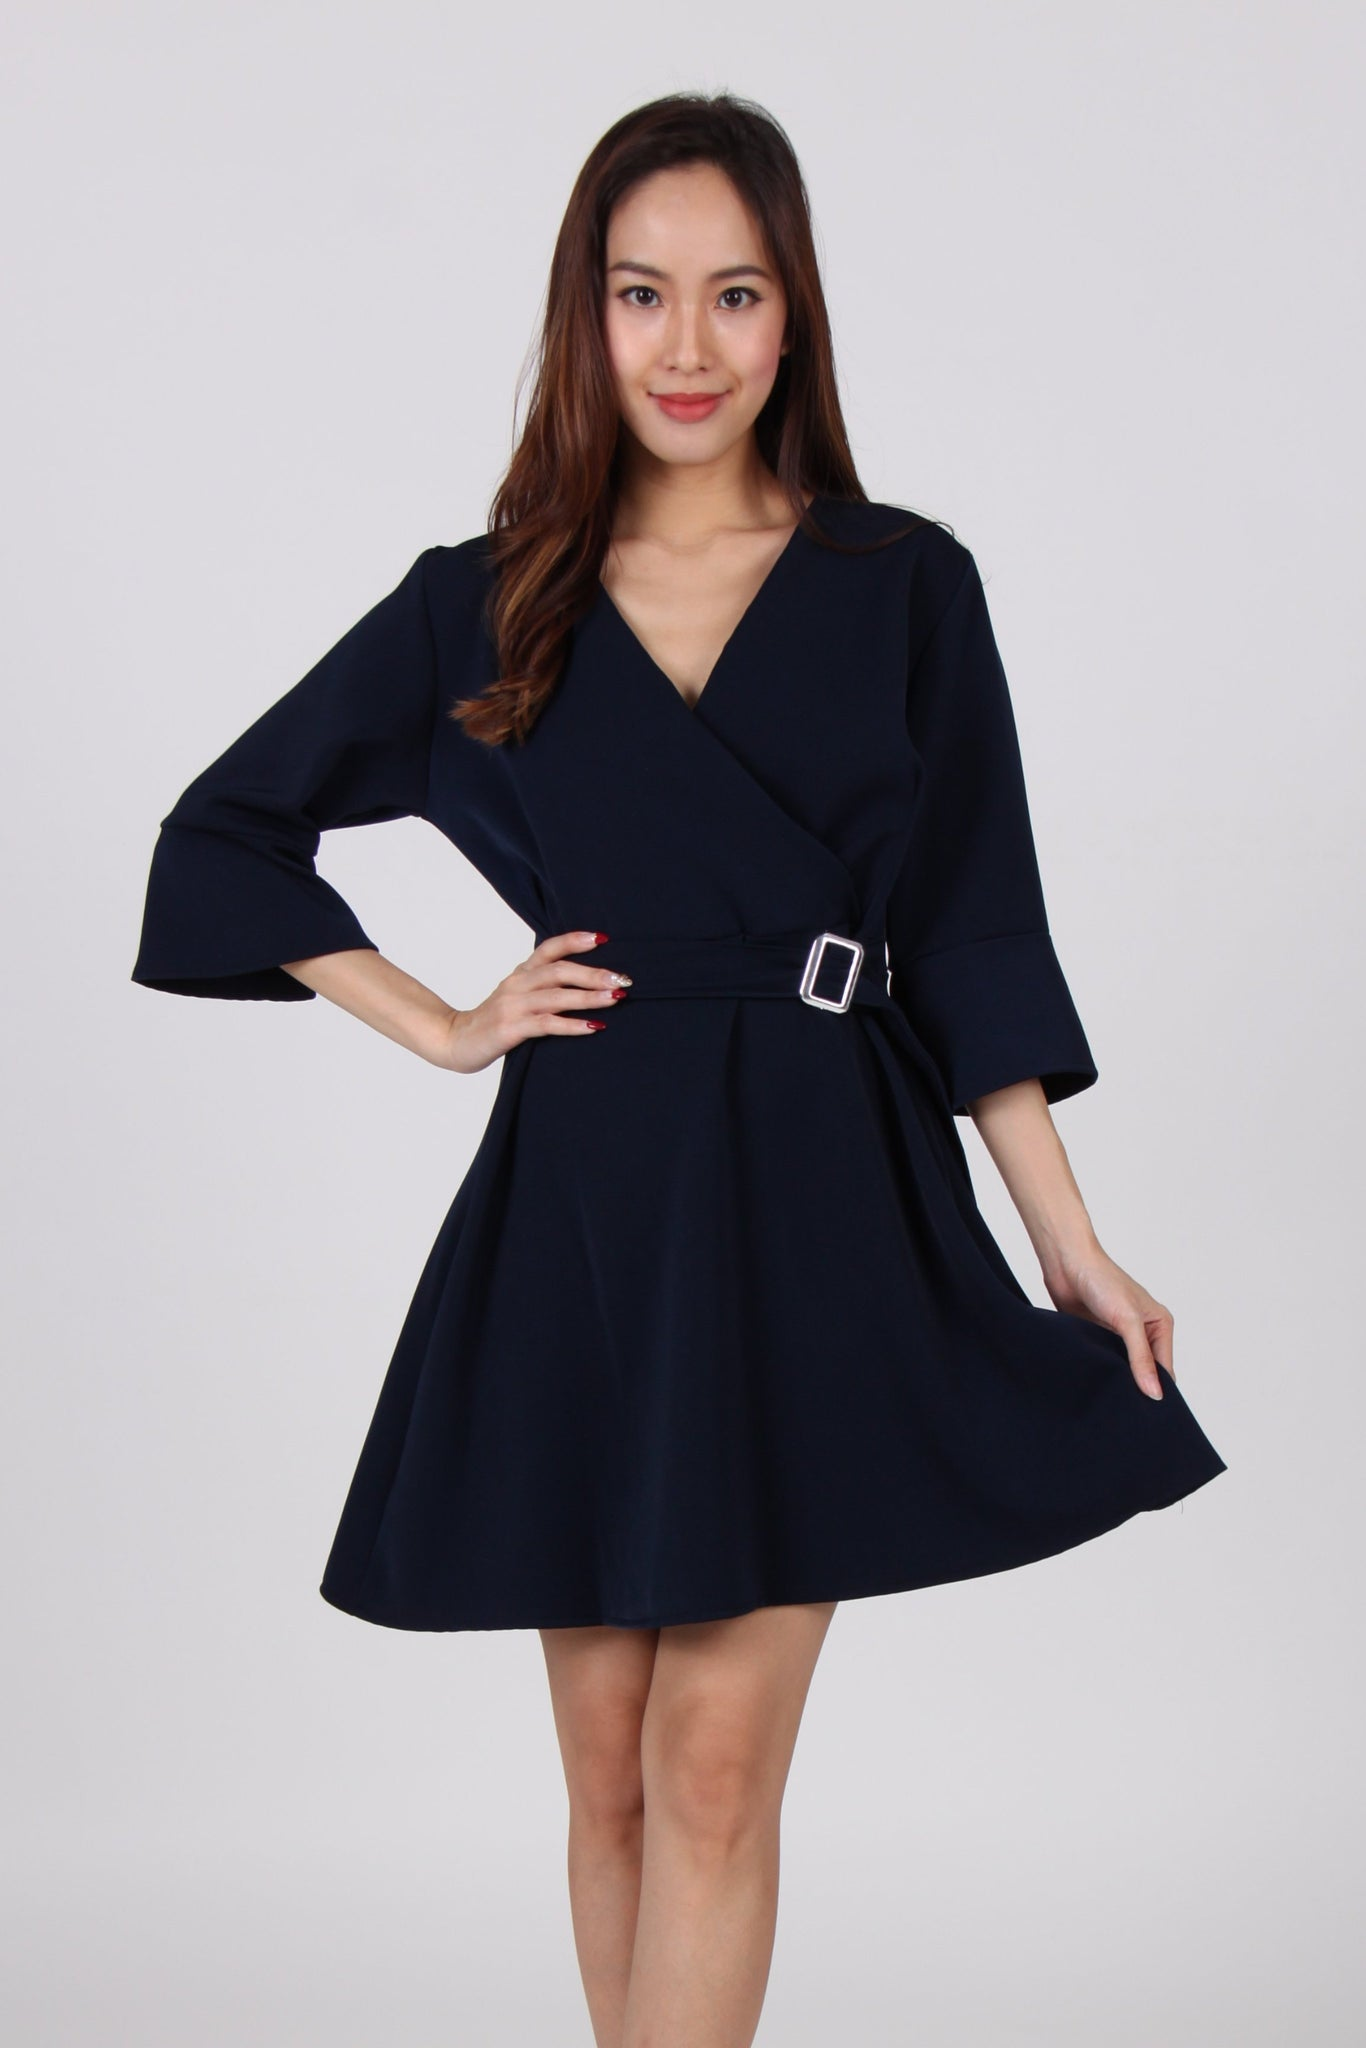 Buckle Overlap Bell Sleeve Skater Dress in Navy Blue